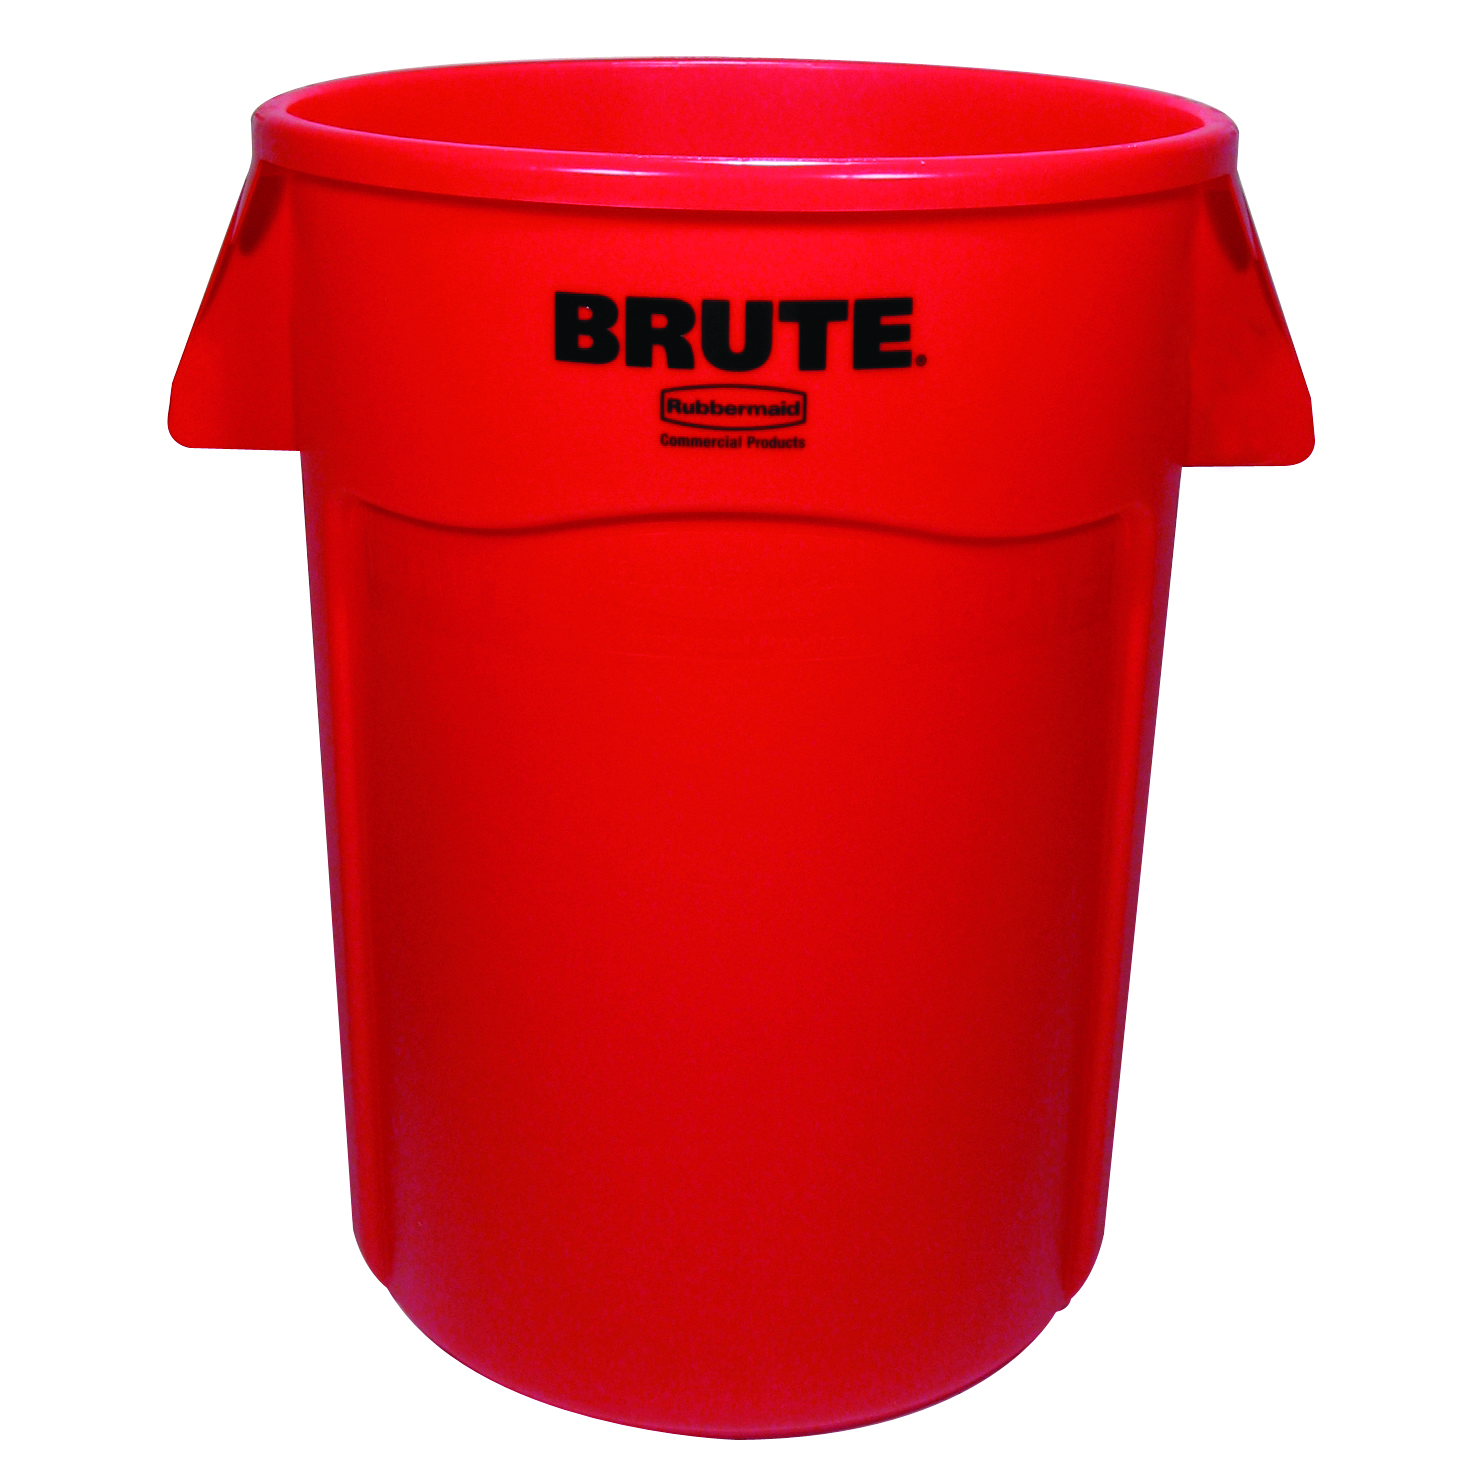 44-Gallon BRUTE Utility Container